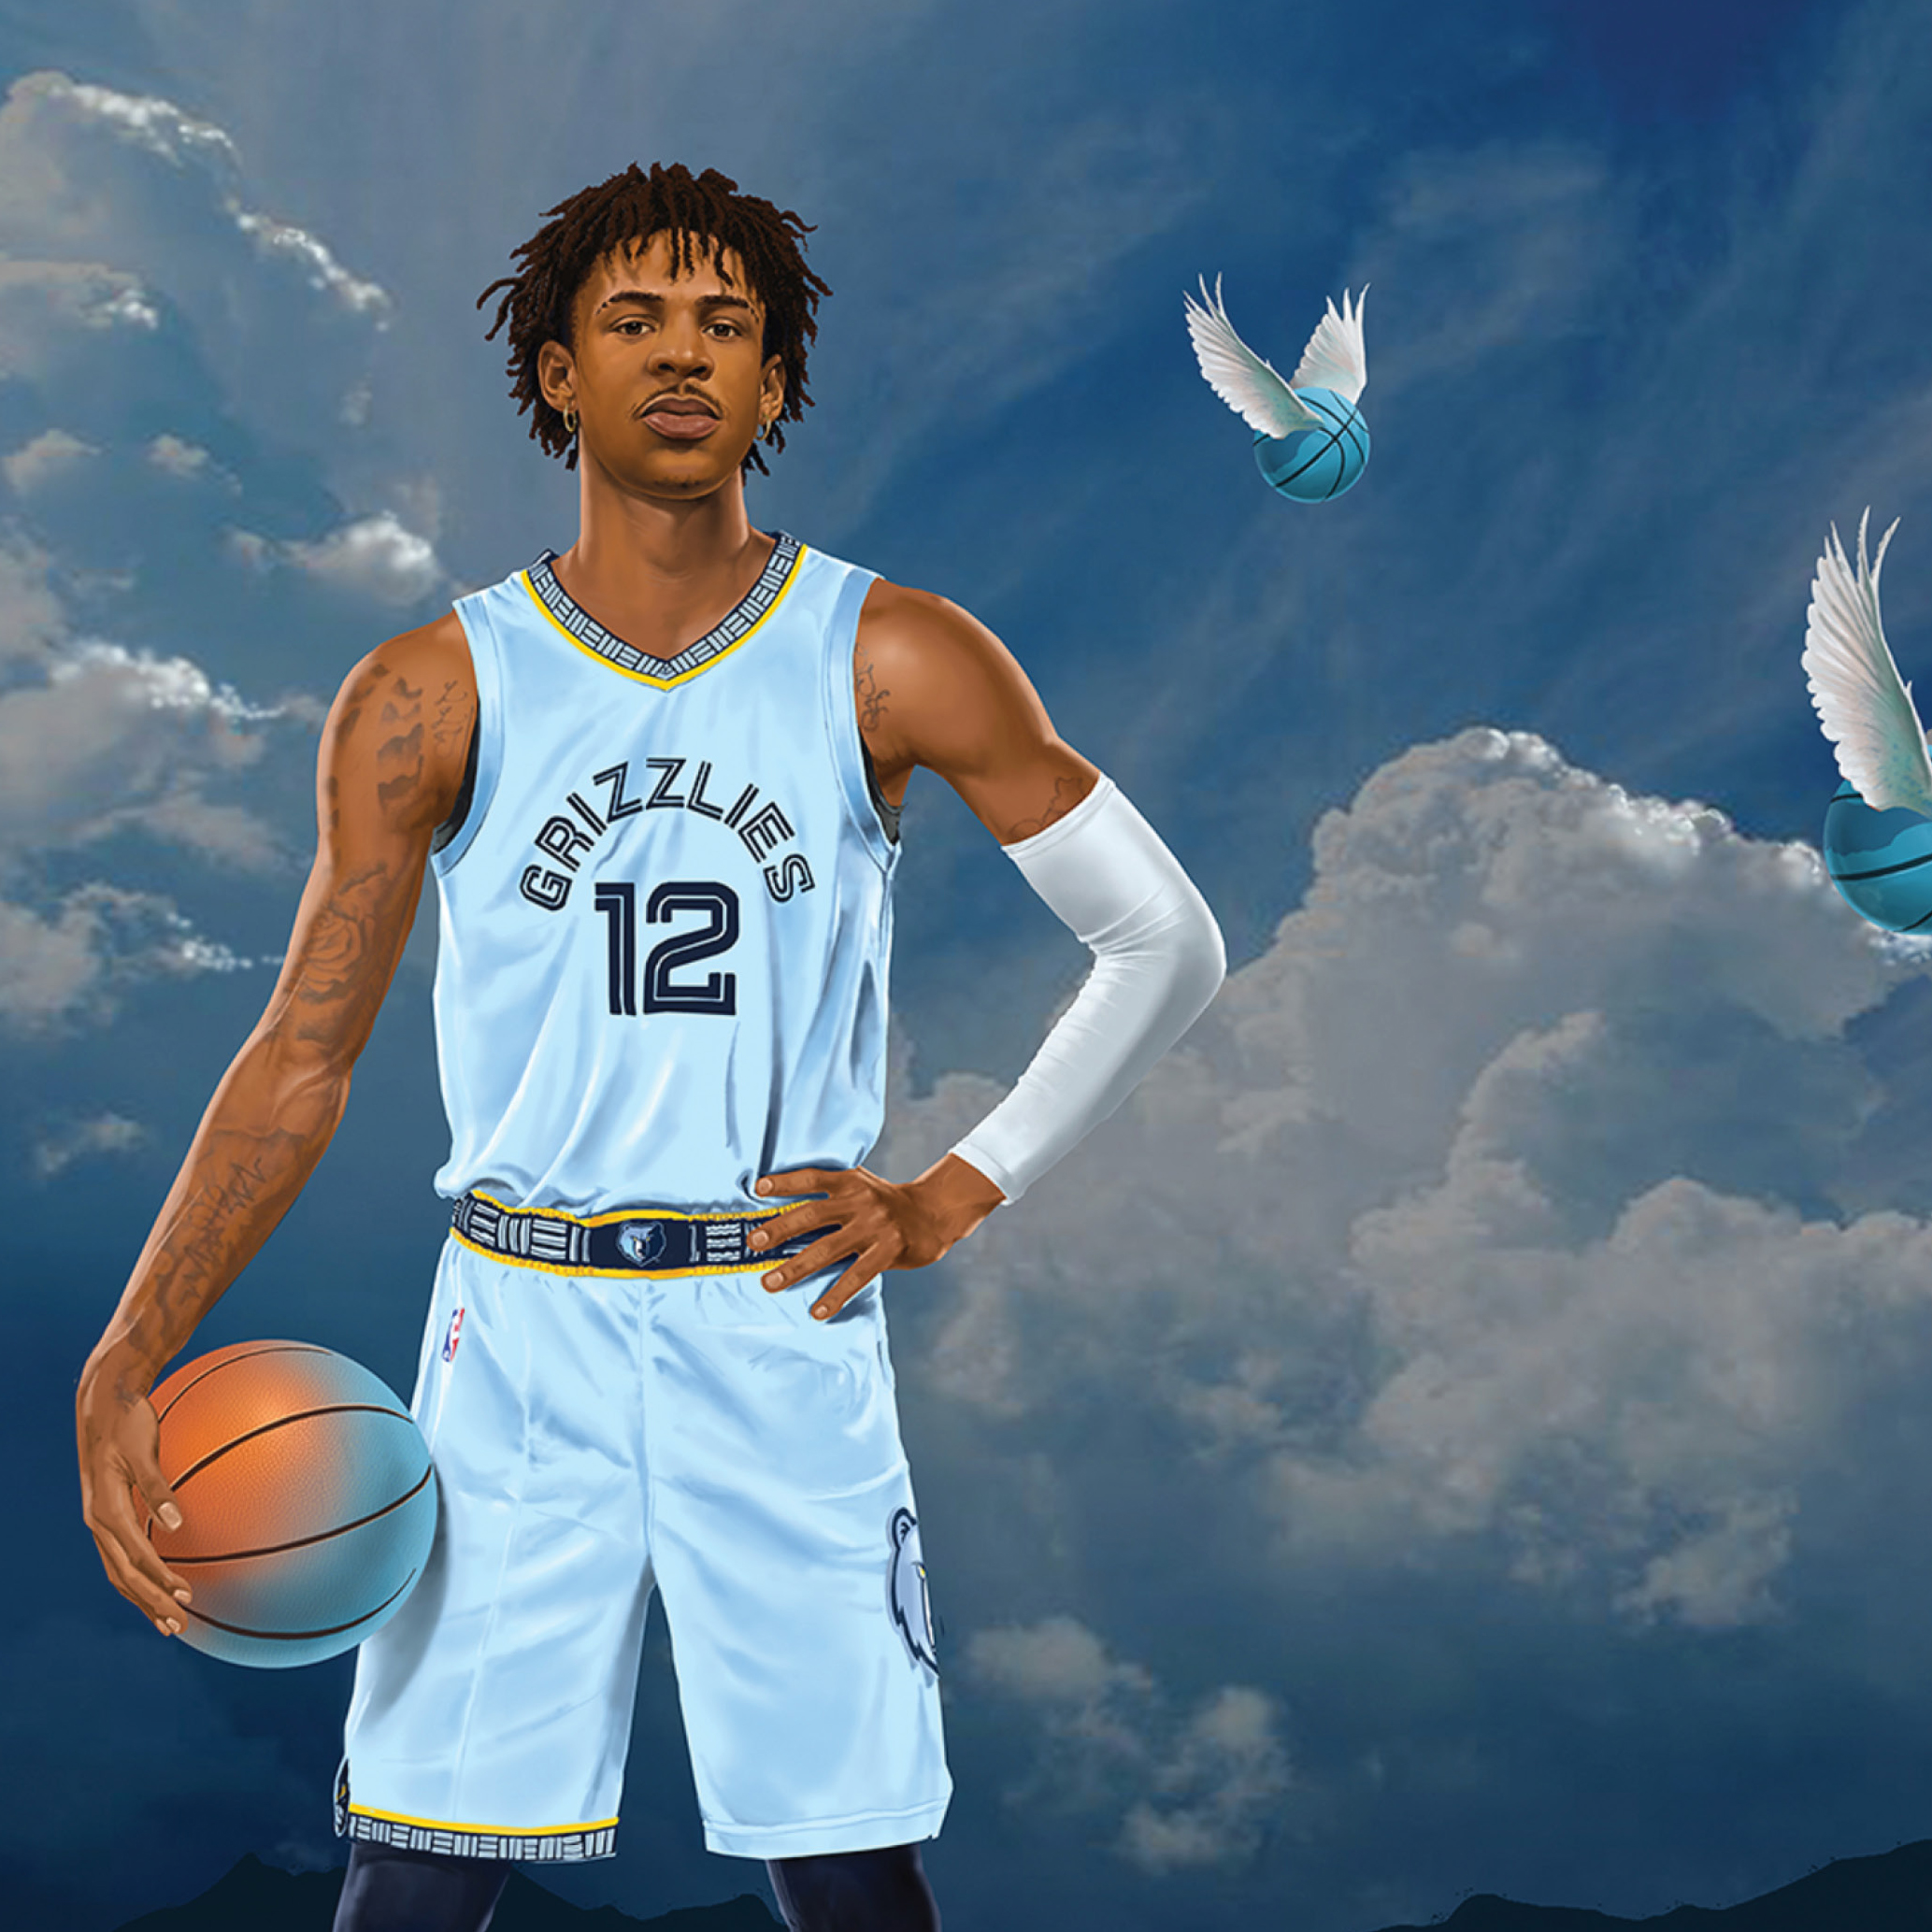 Ja Morant stands among dramatic clouds as winged, Memphis-blue basketballs fly by.